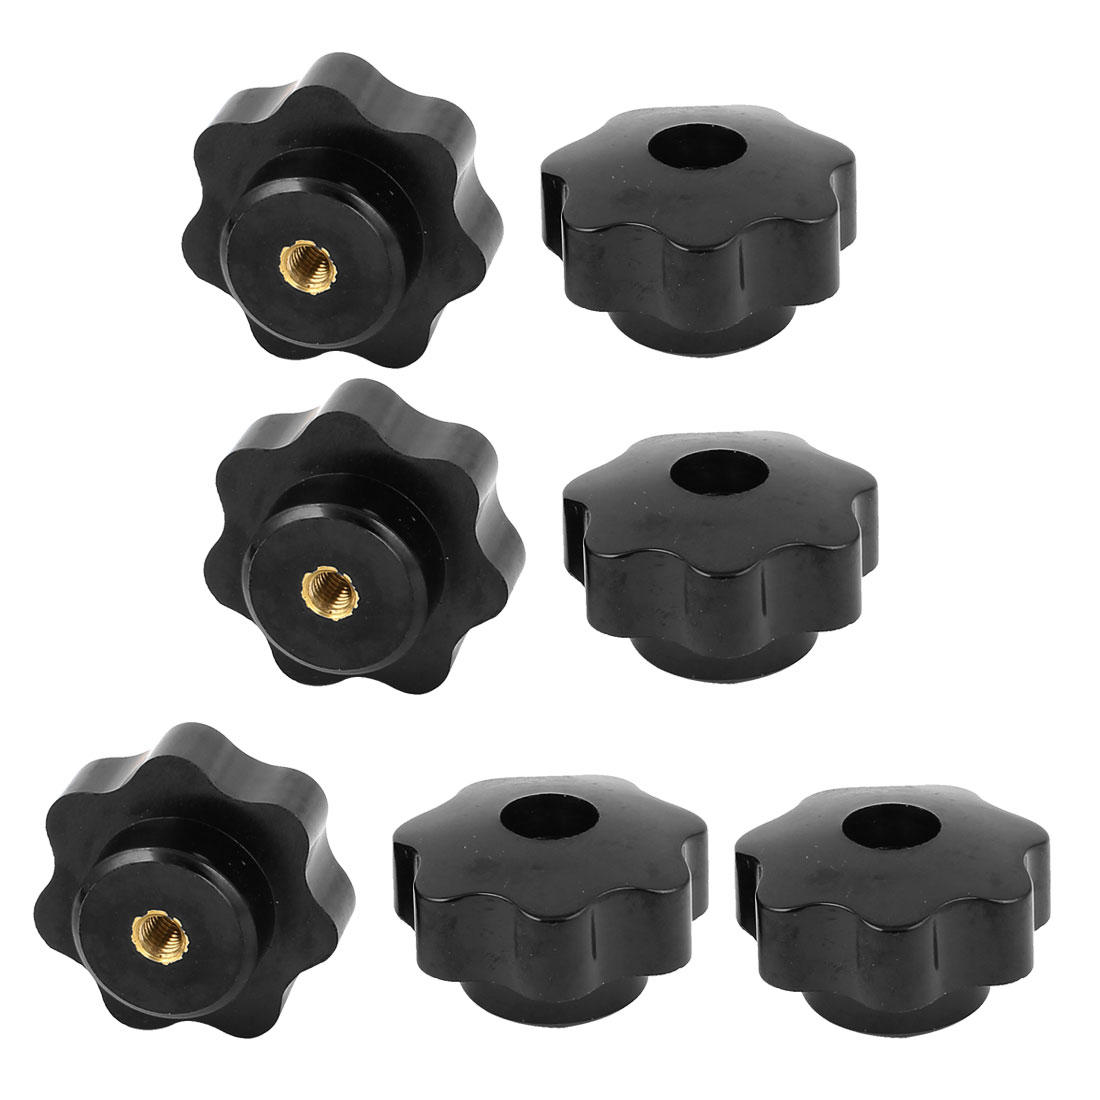 M5 Female Threaded Black Plastic Star Head Screw on Type Clamping Nuts Knob Grip 7pcs